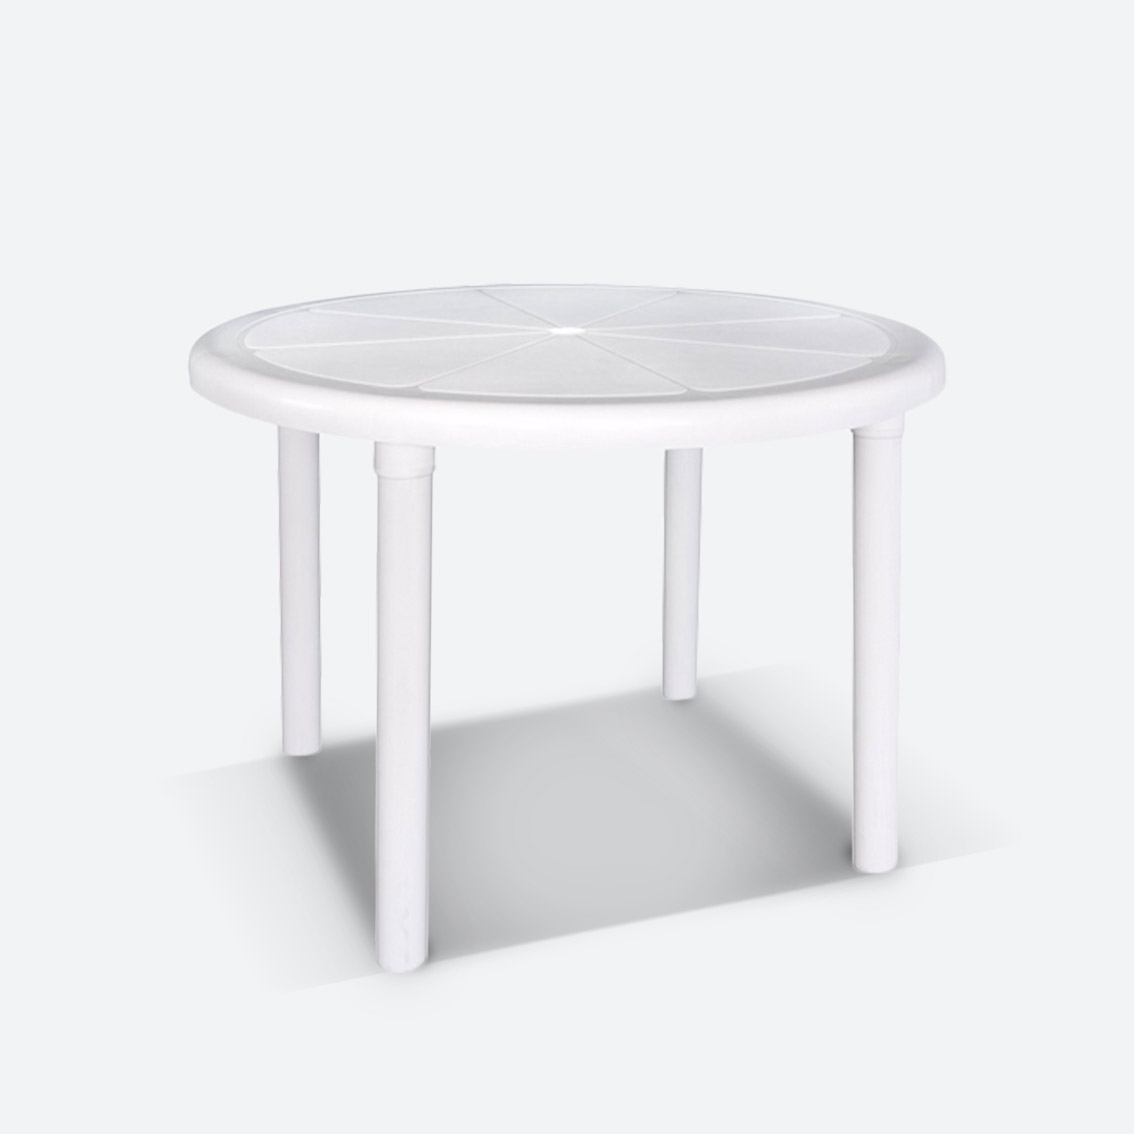 ROUND PATIO TABLE  $12.00